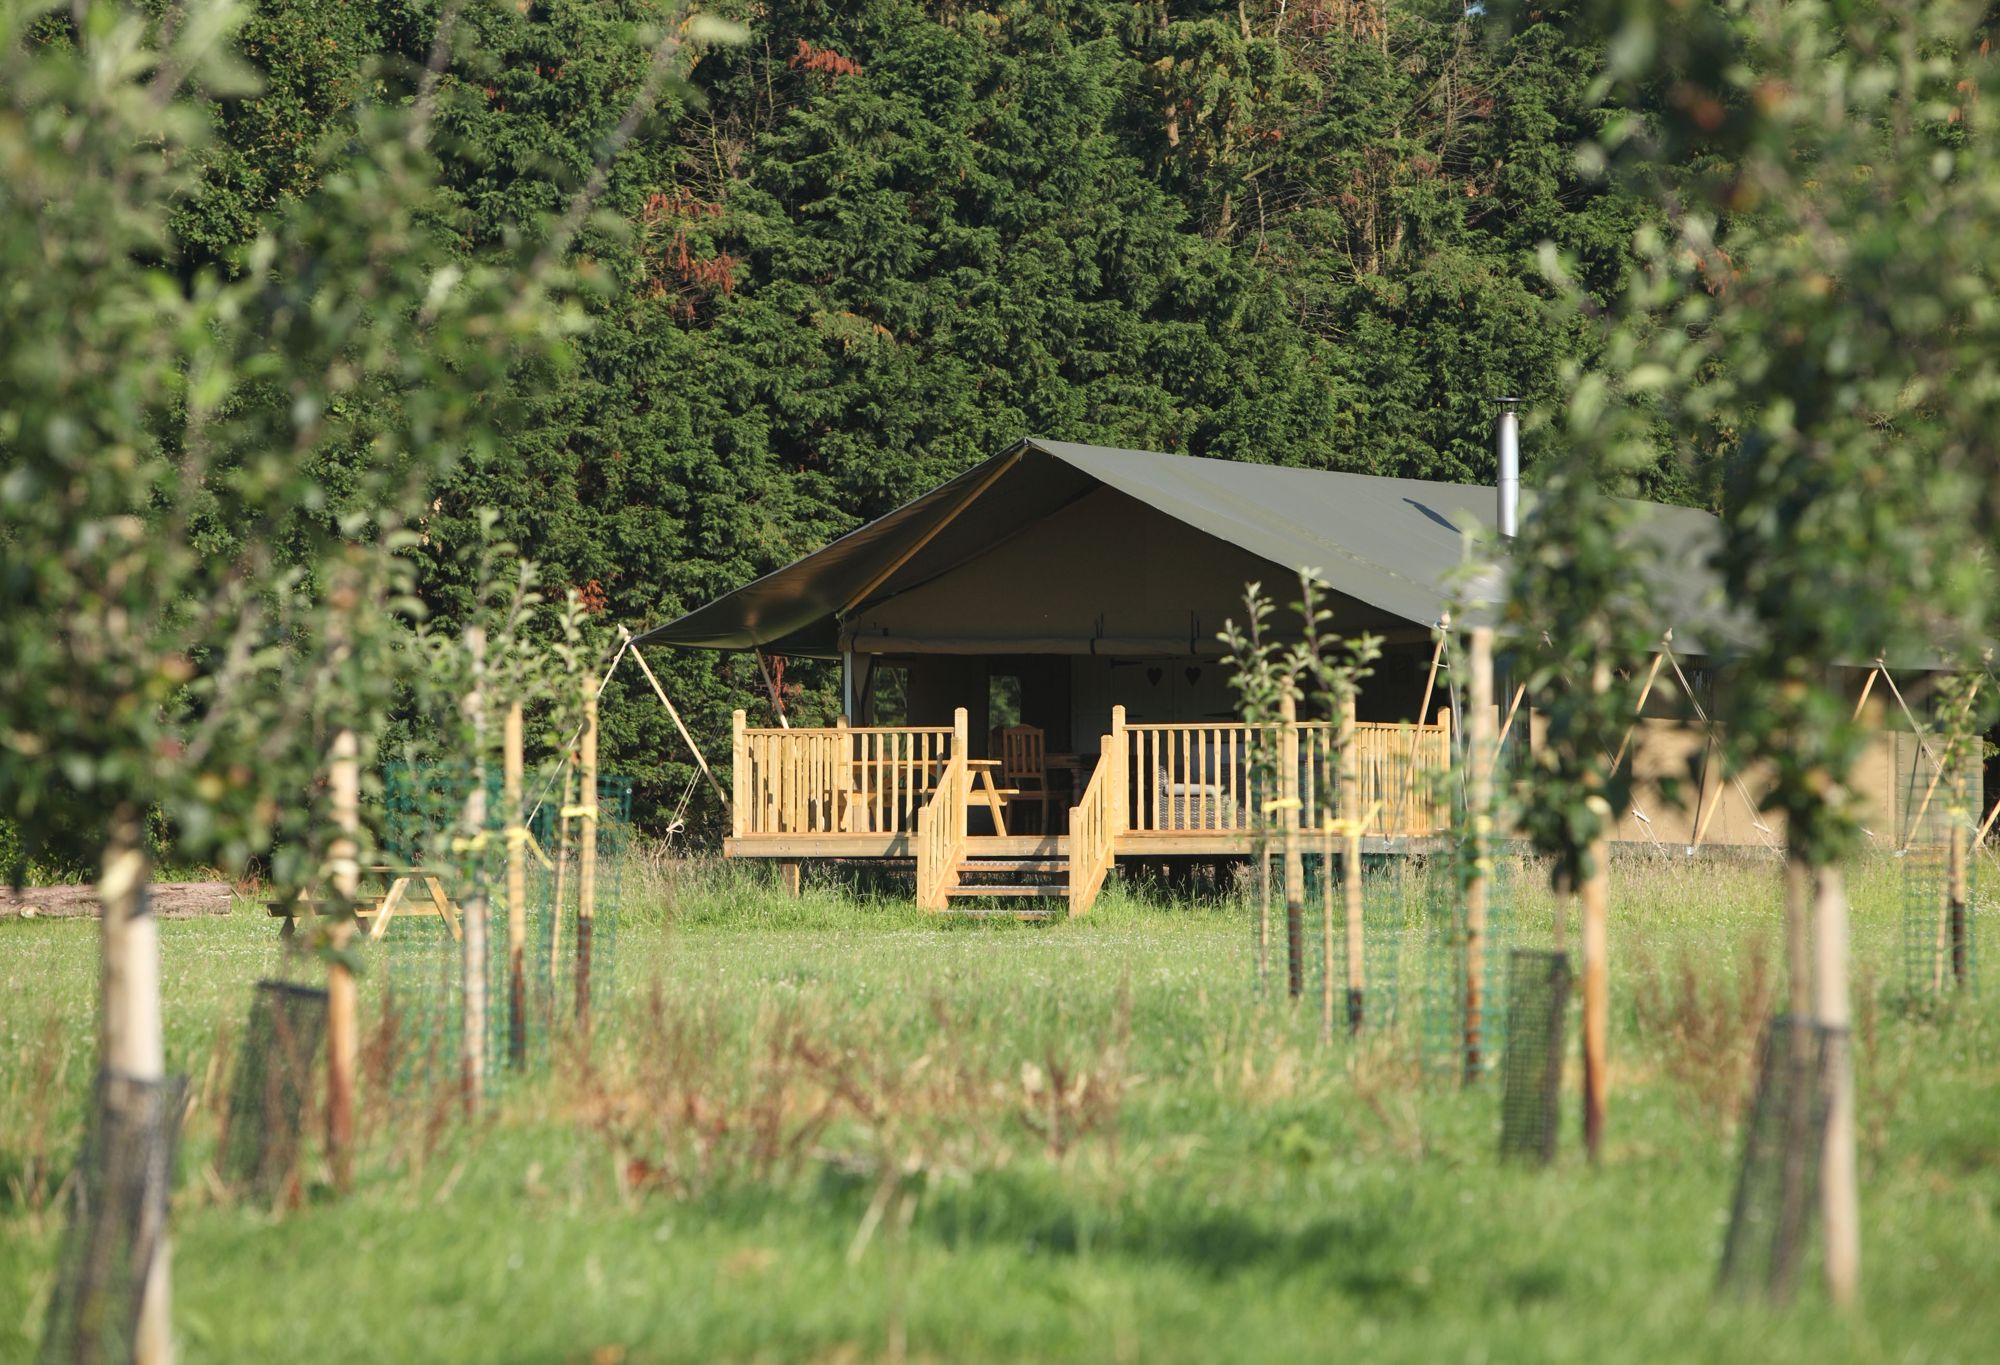 Glamping in The Broads – Glamping in the Norfolk & Suffolk Broads